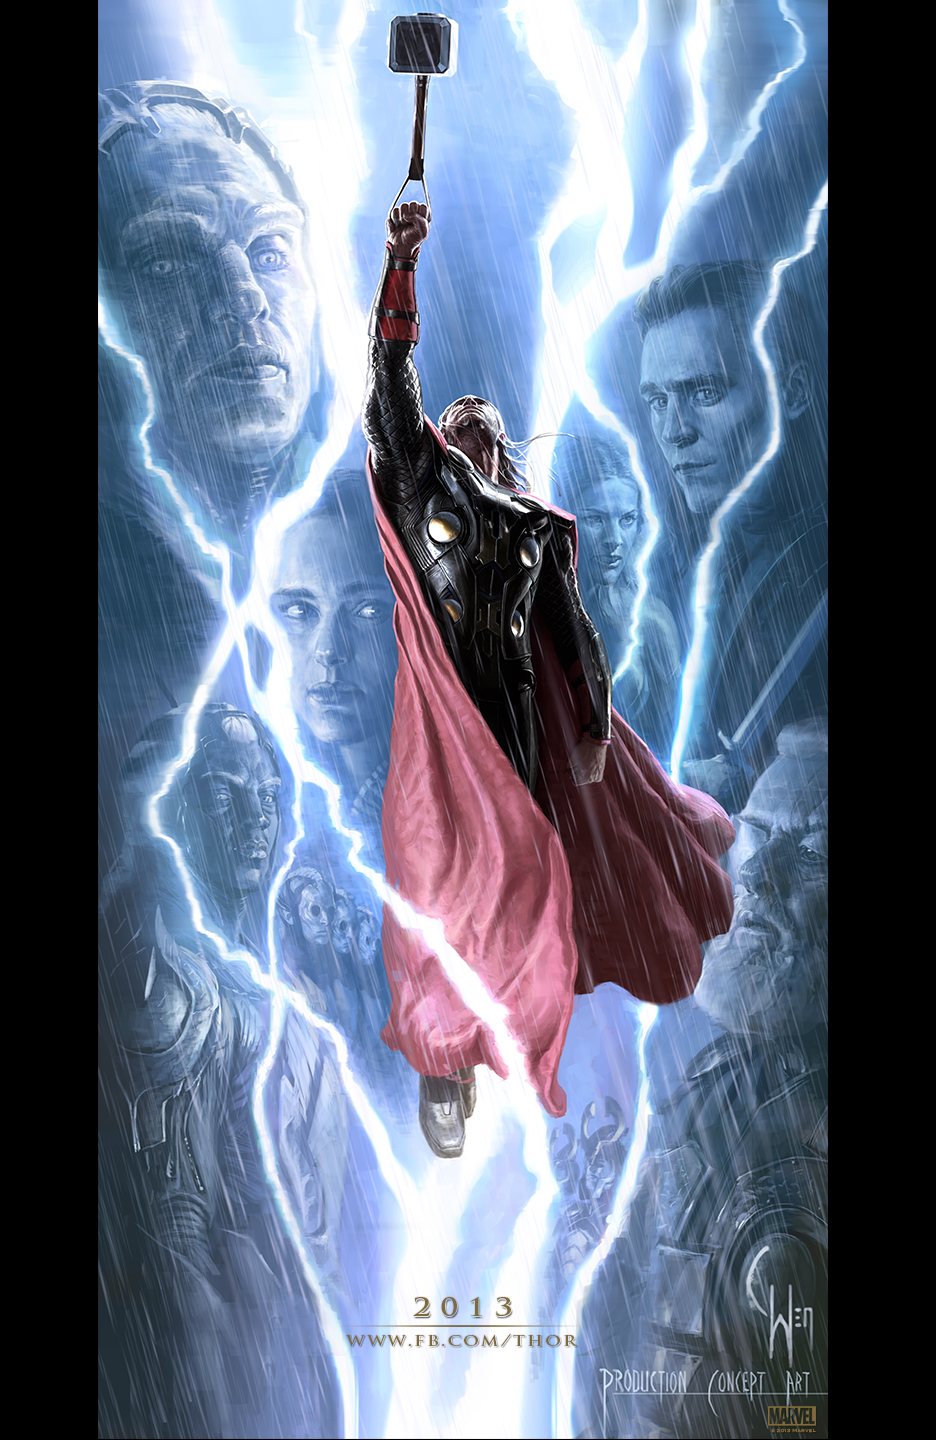 Thor The Dark World Concept Poster New Concept Poster from Thor: The Dark World Released